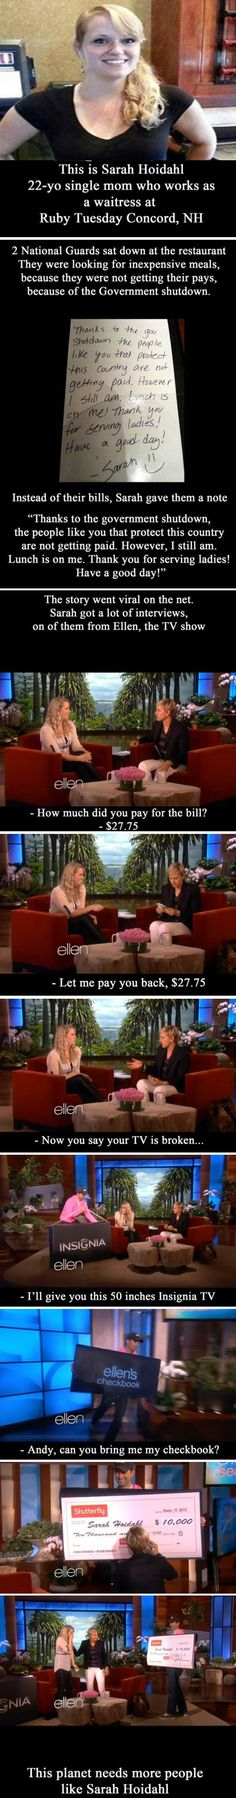 Faith In Humanity Restored...more people like Sarah, and more people like Ellen.